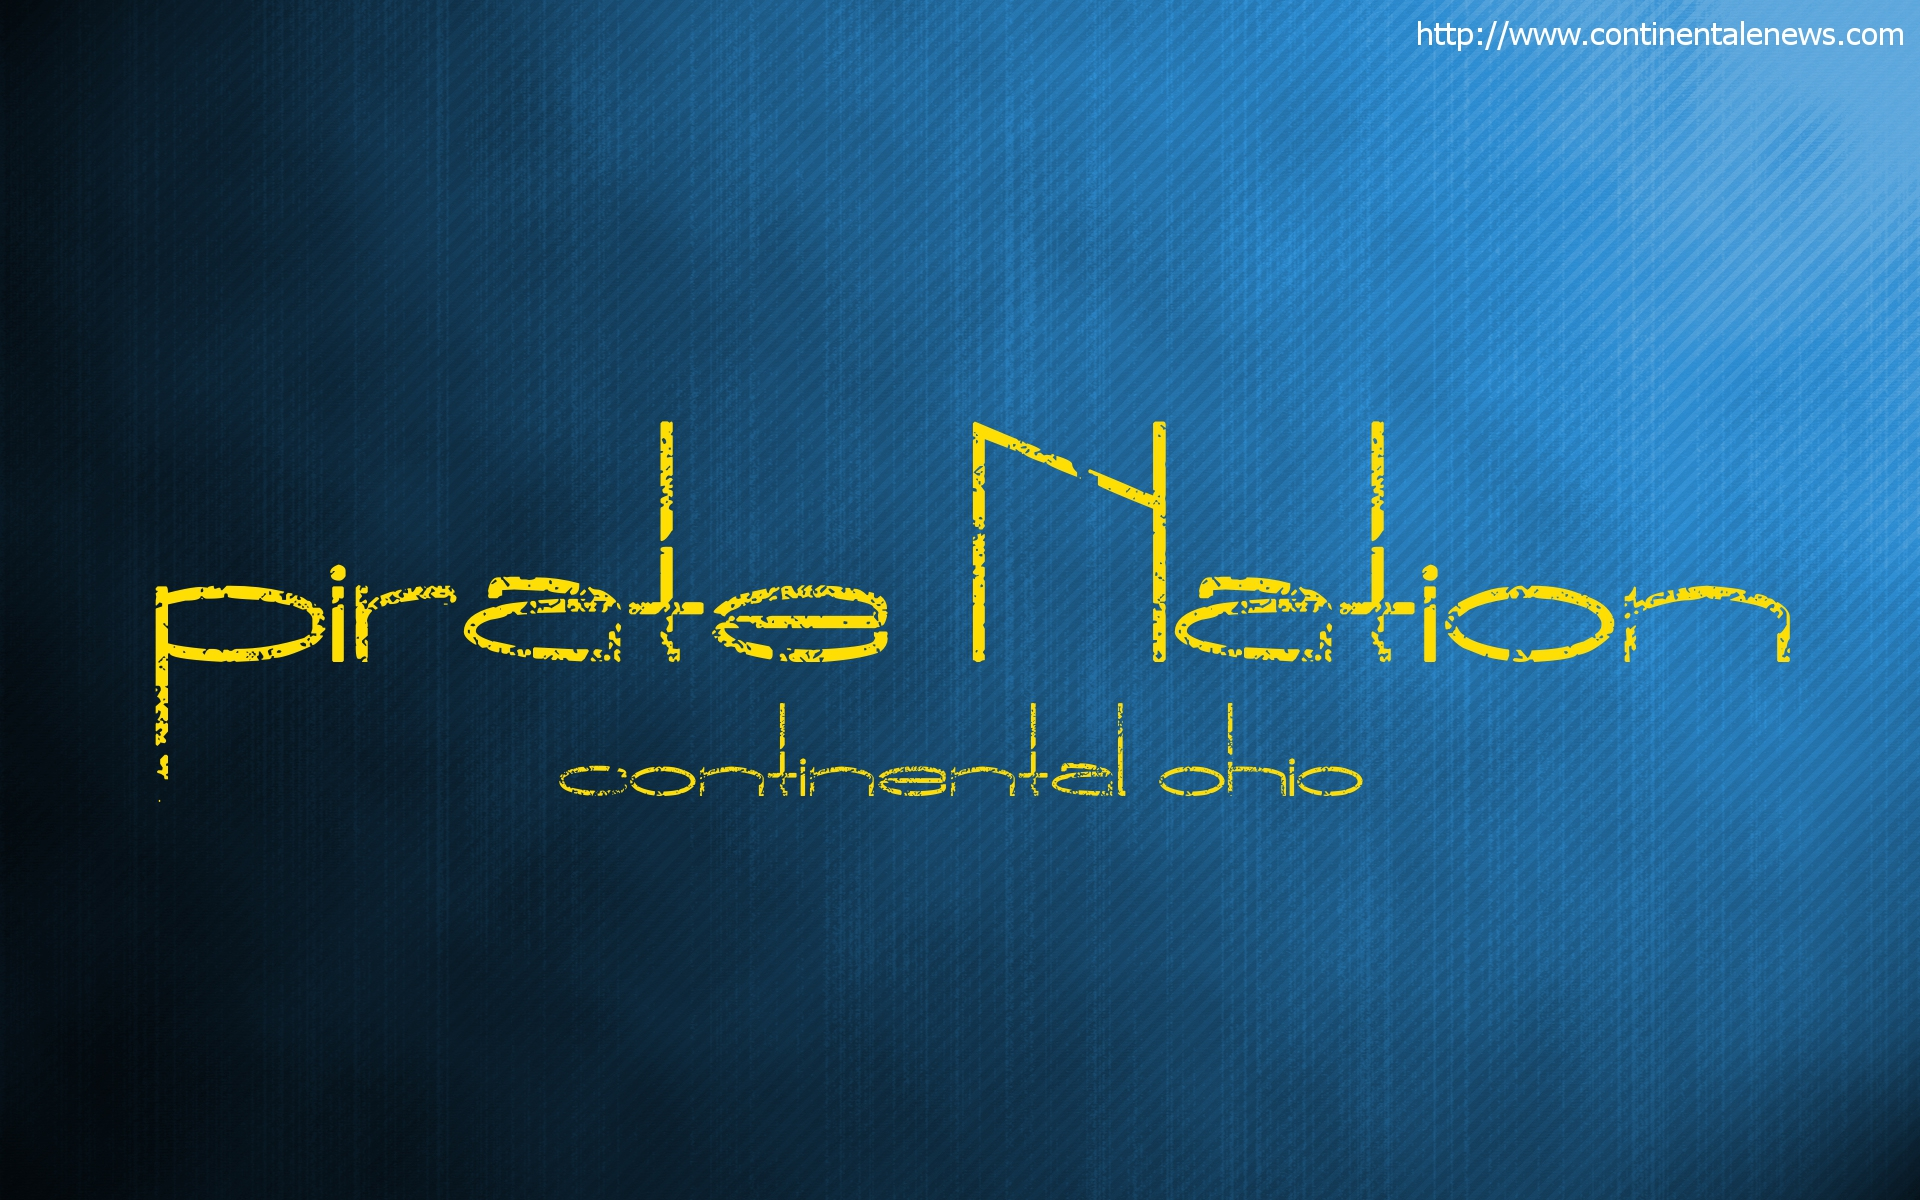 Continental Pirate Nation Wallpaper